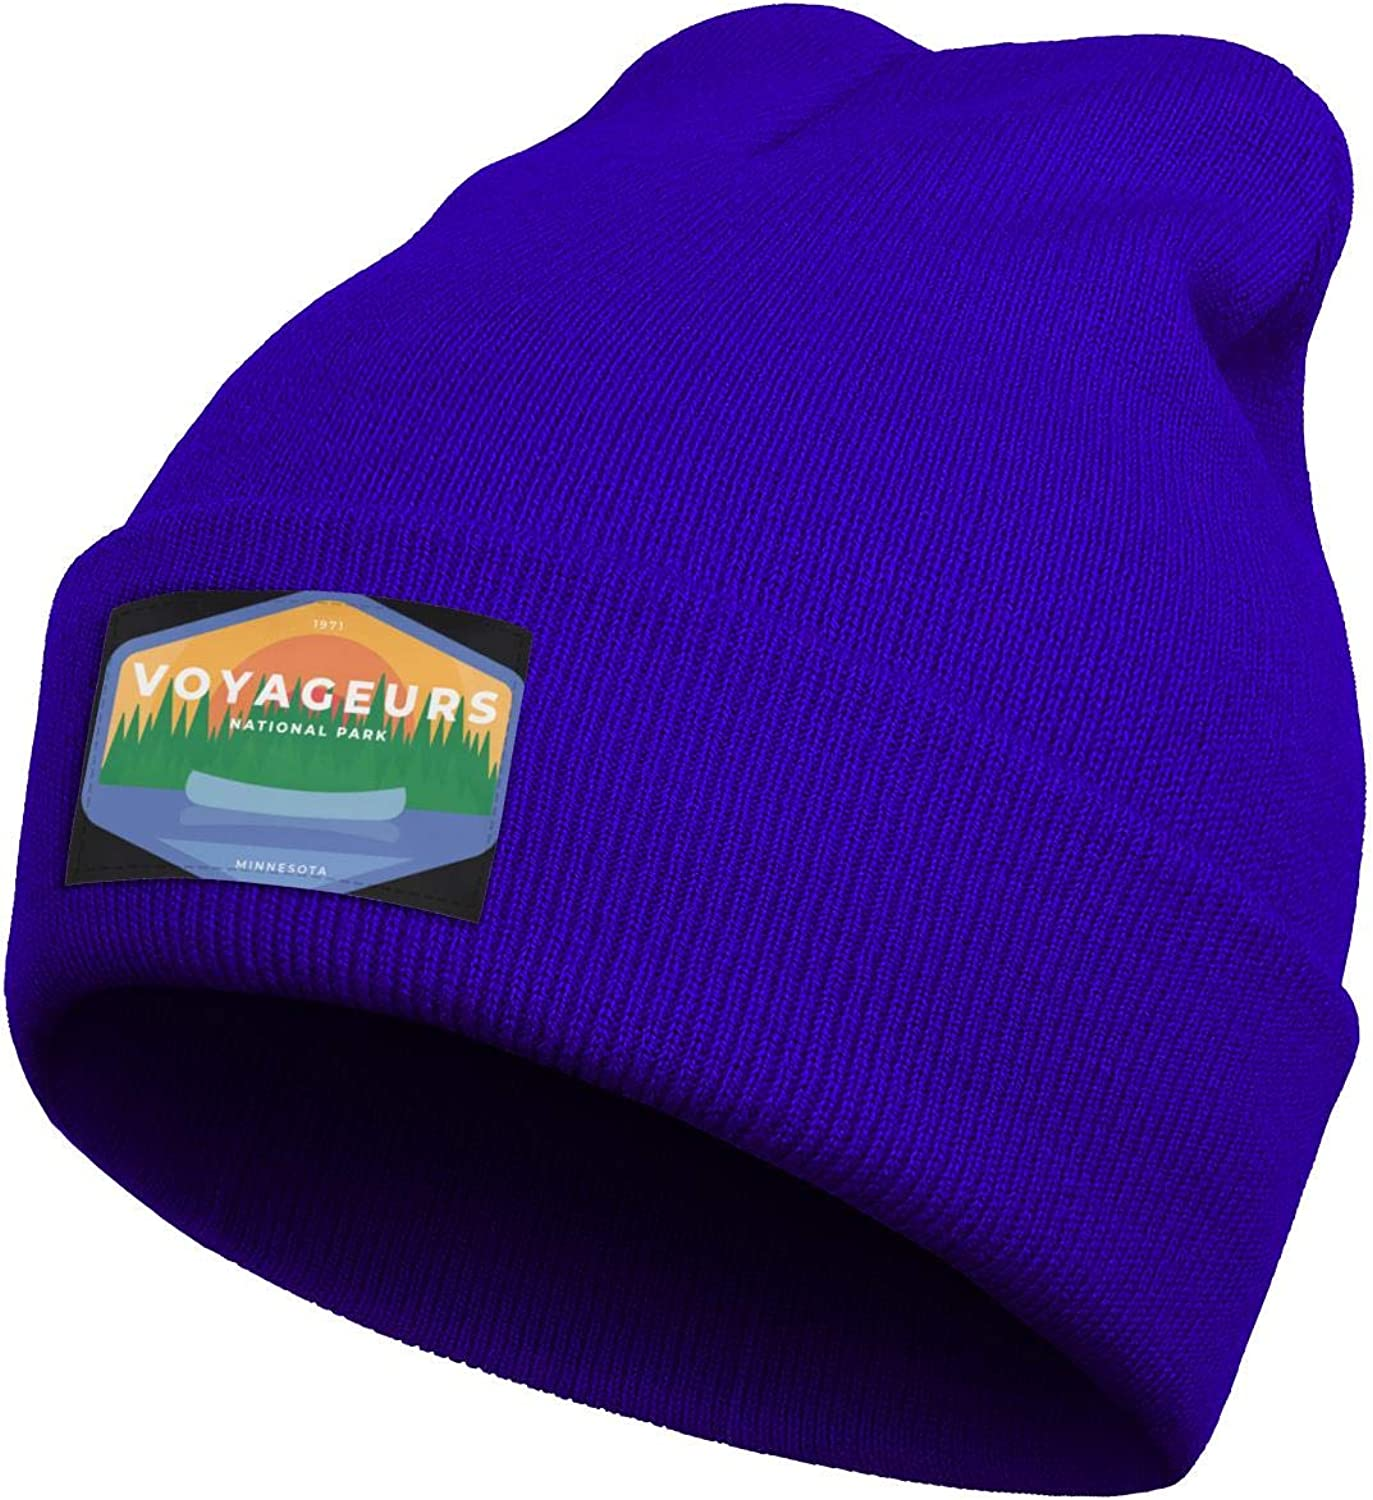 Mens Knitting Beanie Voyageurs-National-Park Caps Perfect for Snowboarding